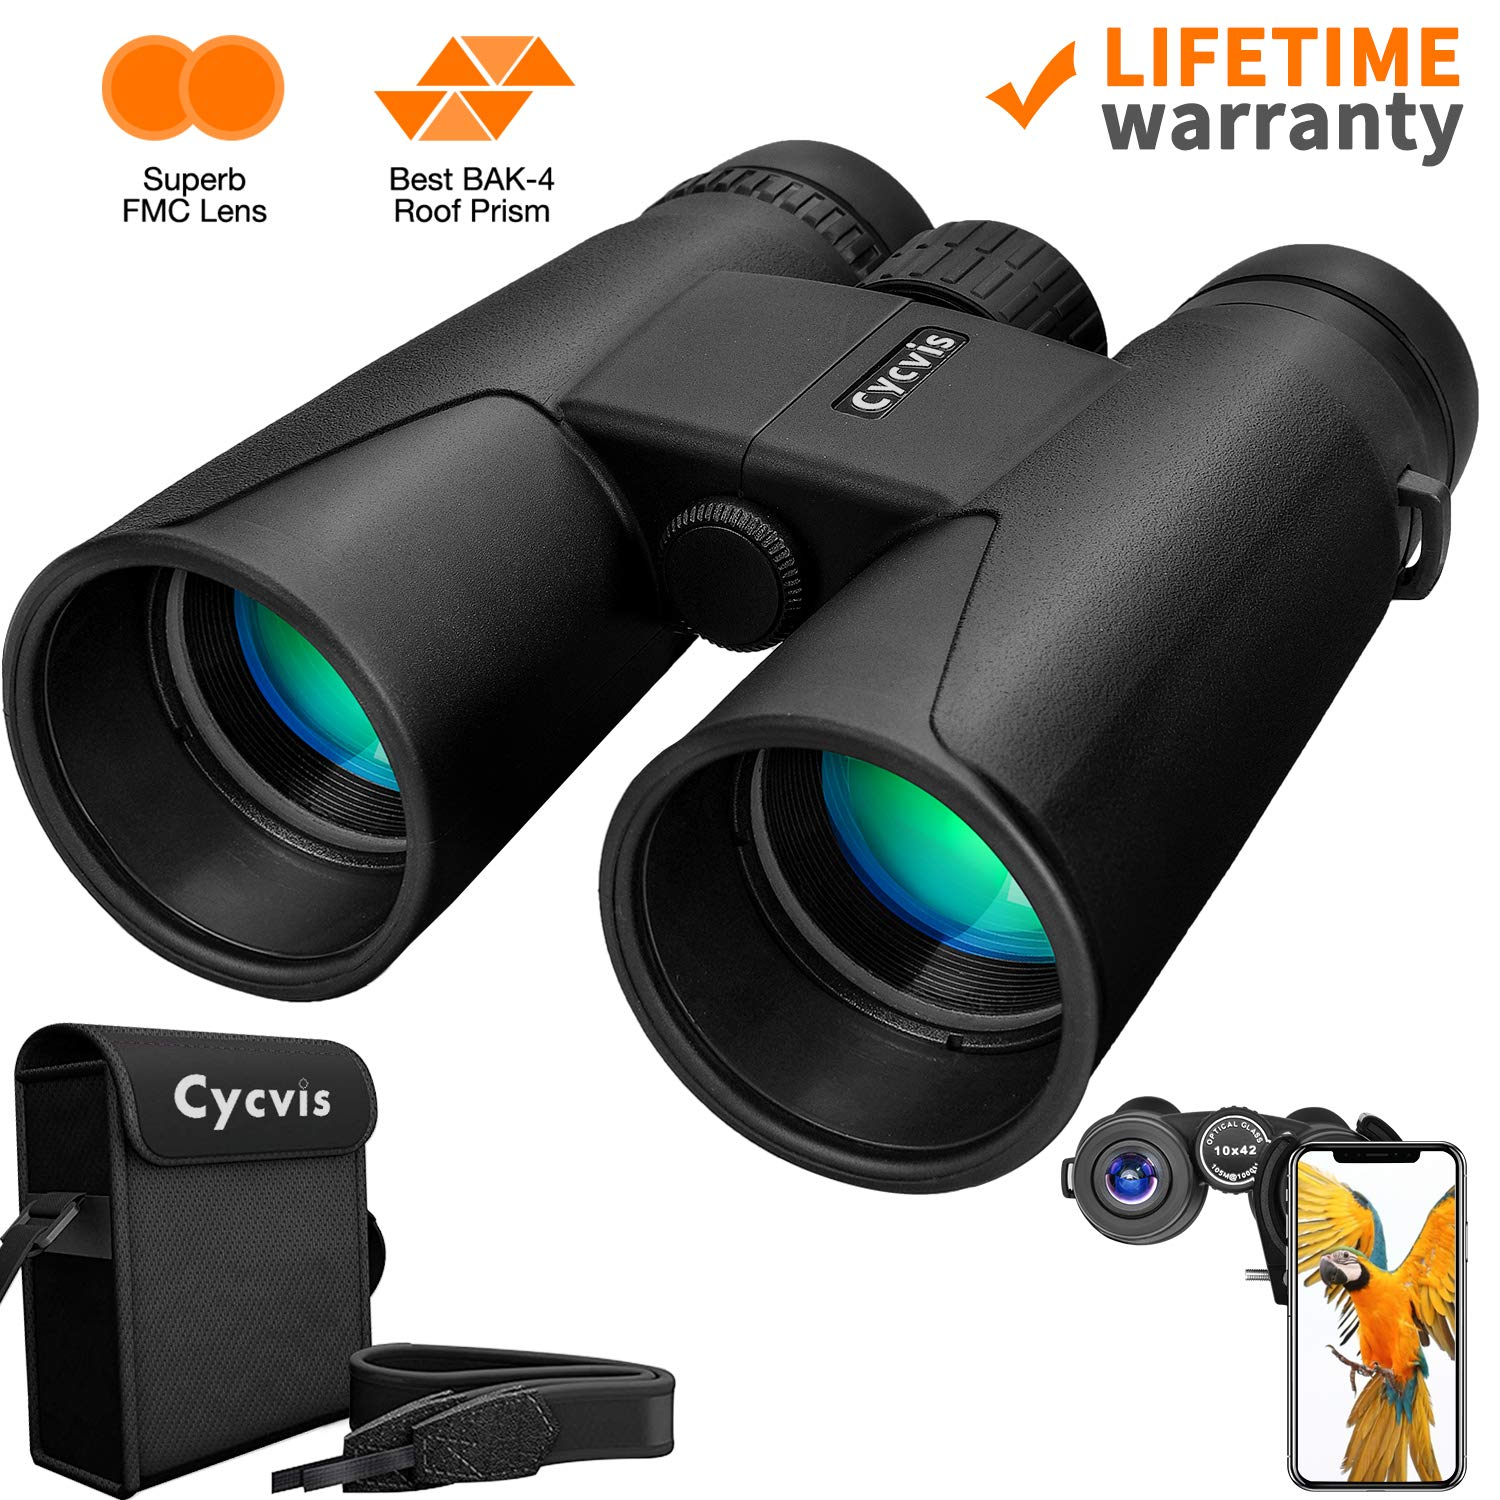 10x42 Roof Prism Binoculars for Adults - Professional HD Binoculars for Birds Watching Travel Stargazing Concert with Clear Weak Light Vision - BAK4 Prism FMC Lens with Strap Carrying Bag (1.1 pounds)